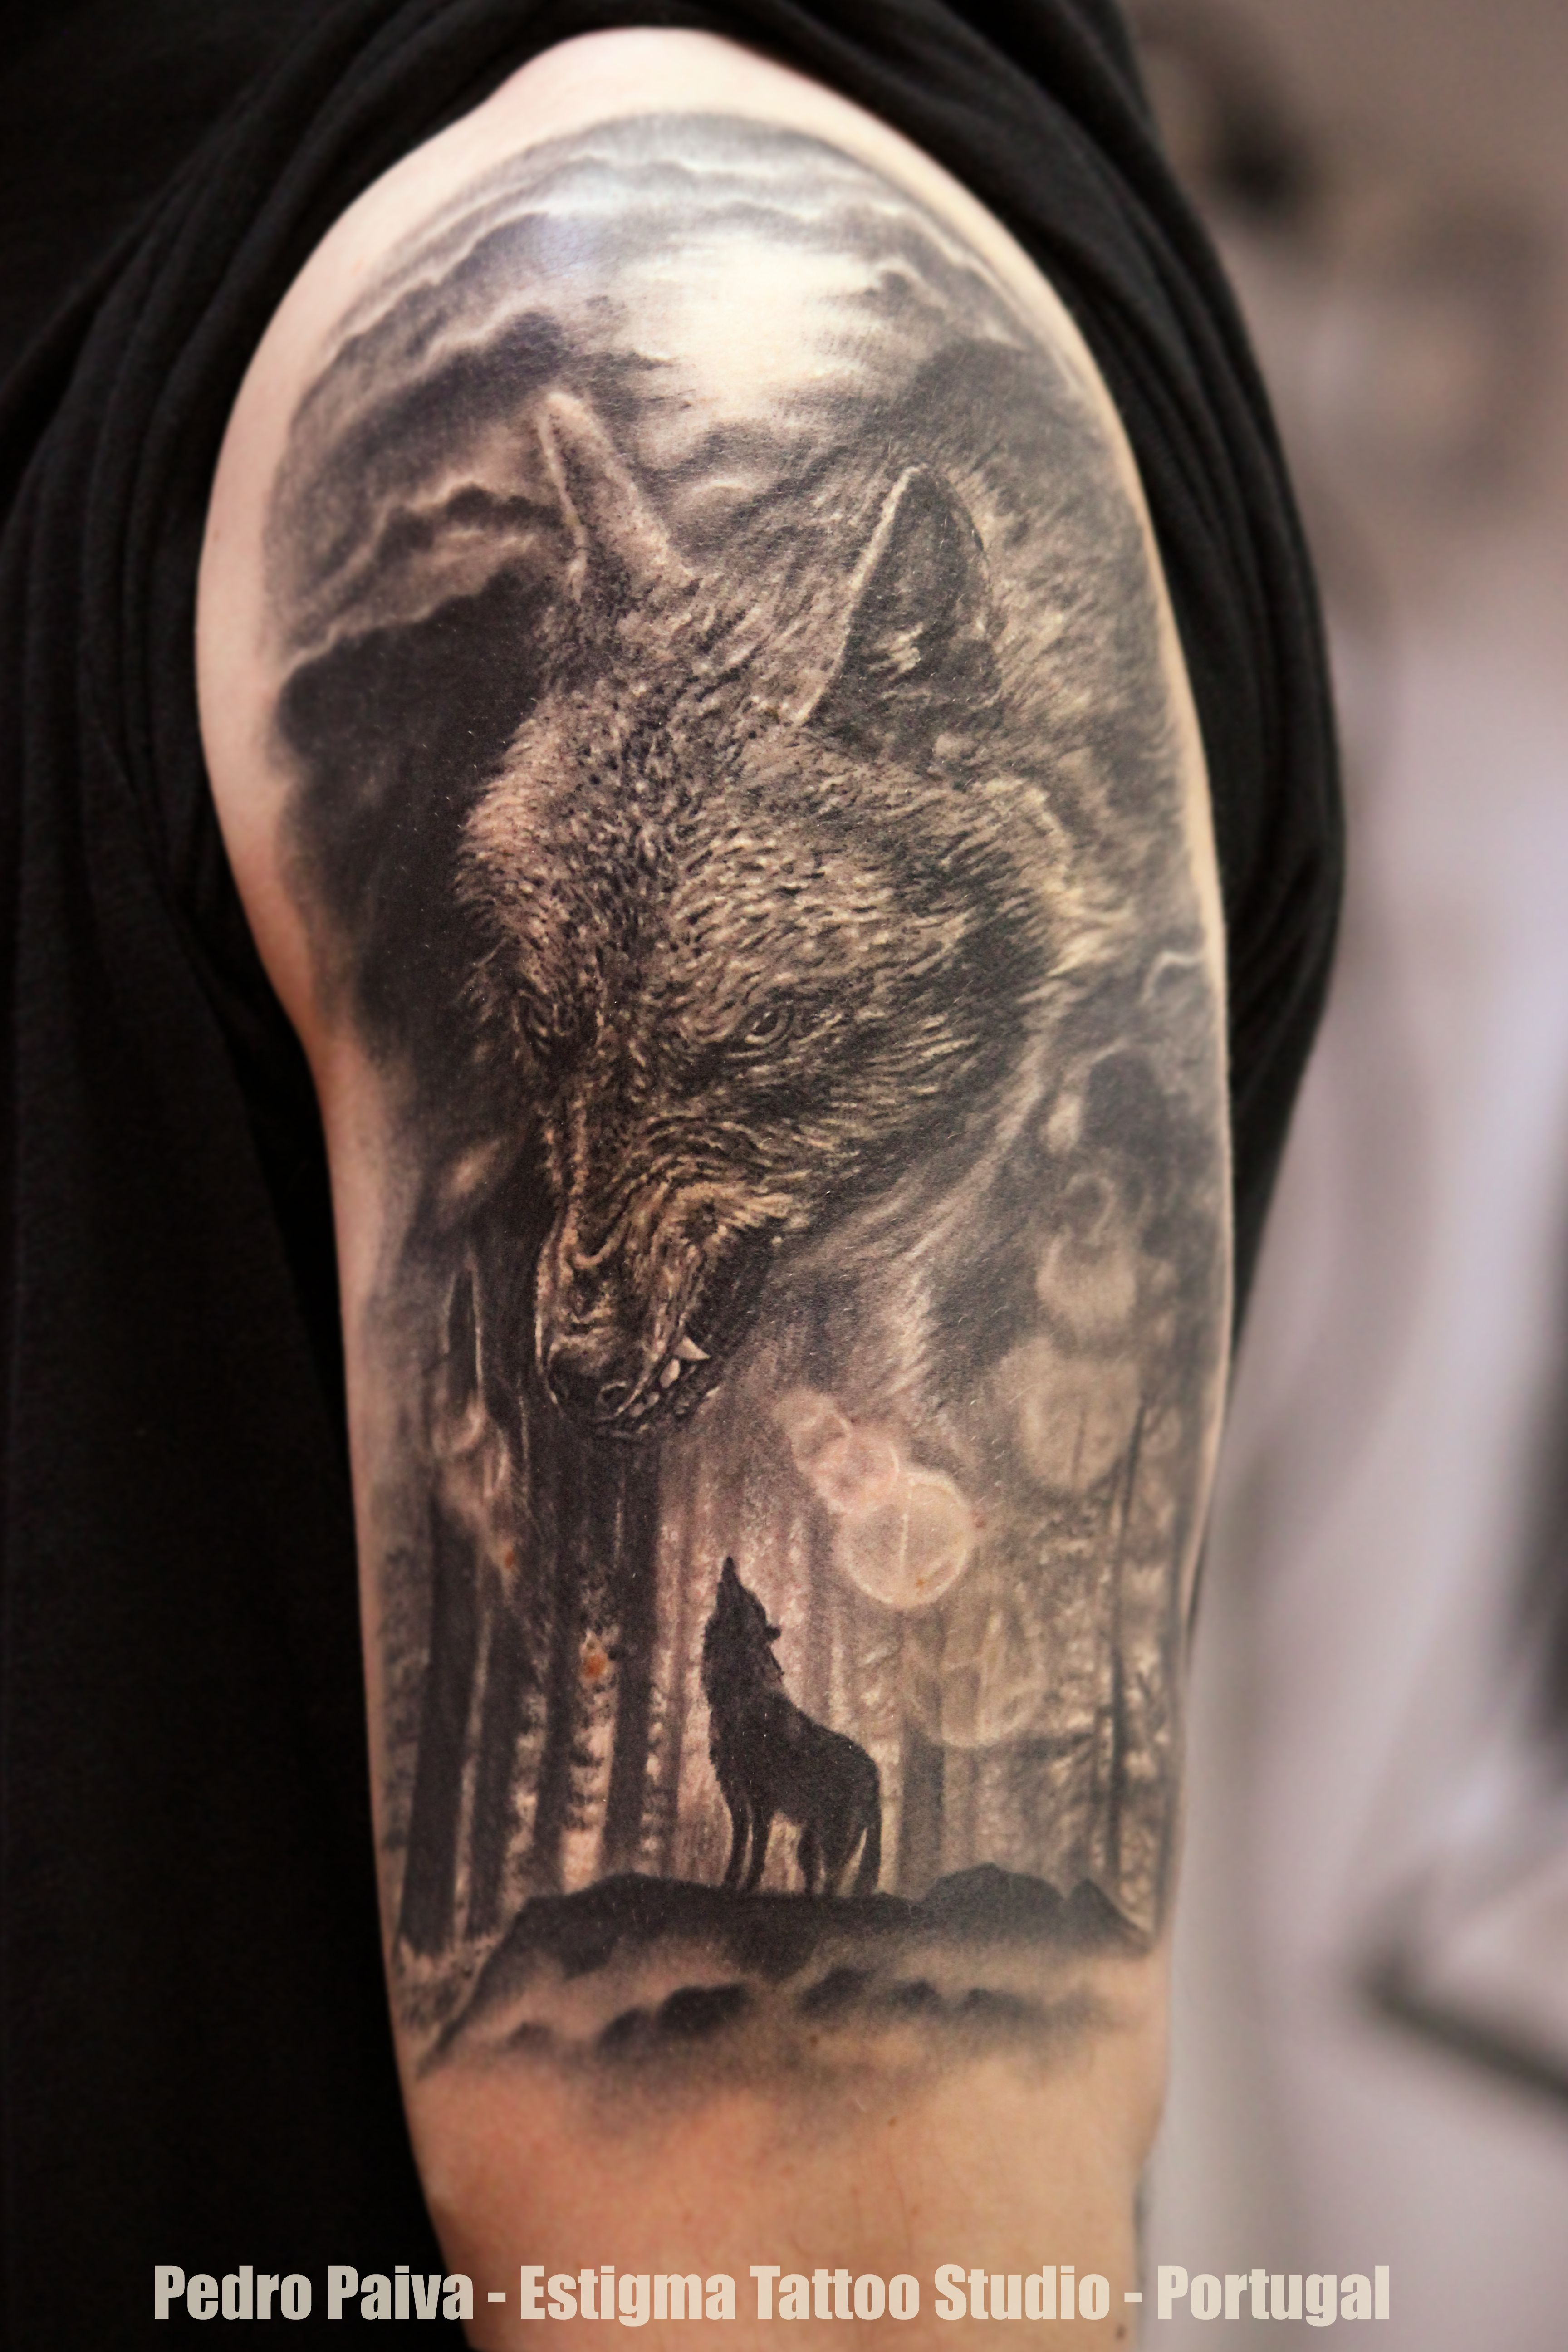 Pin By Chris Klein On My Saves In 2020 Forest Tattoos Leg Tattoos Wolf And Moon Tattoo